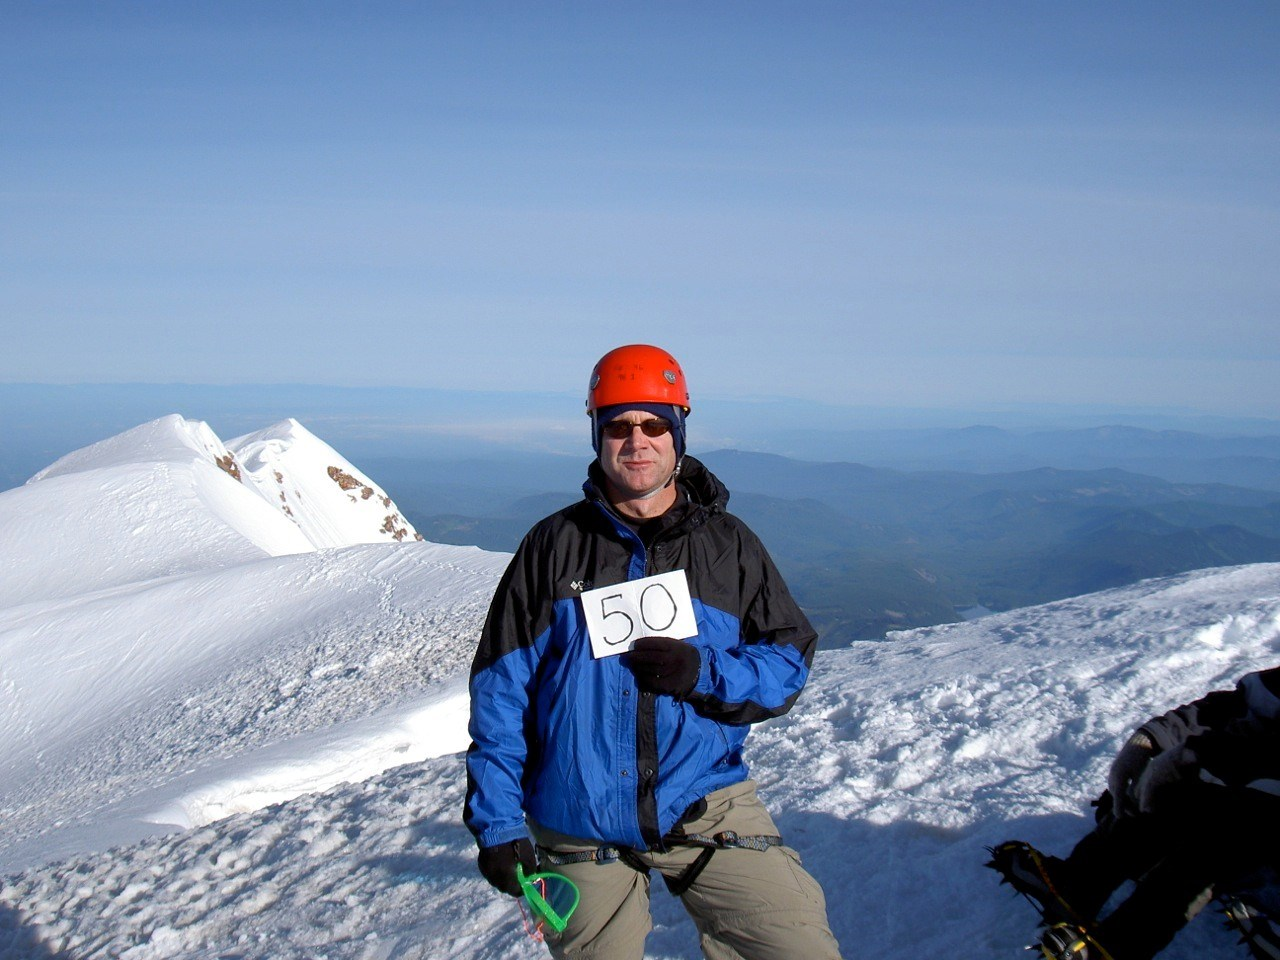 Summiting Mt. Hood